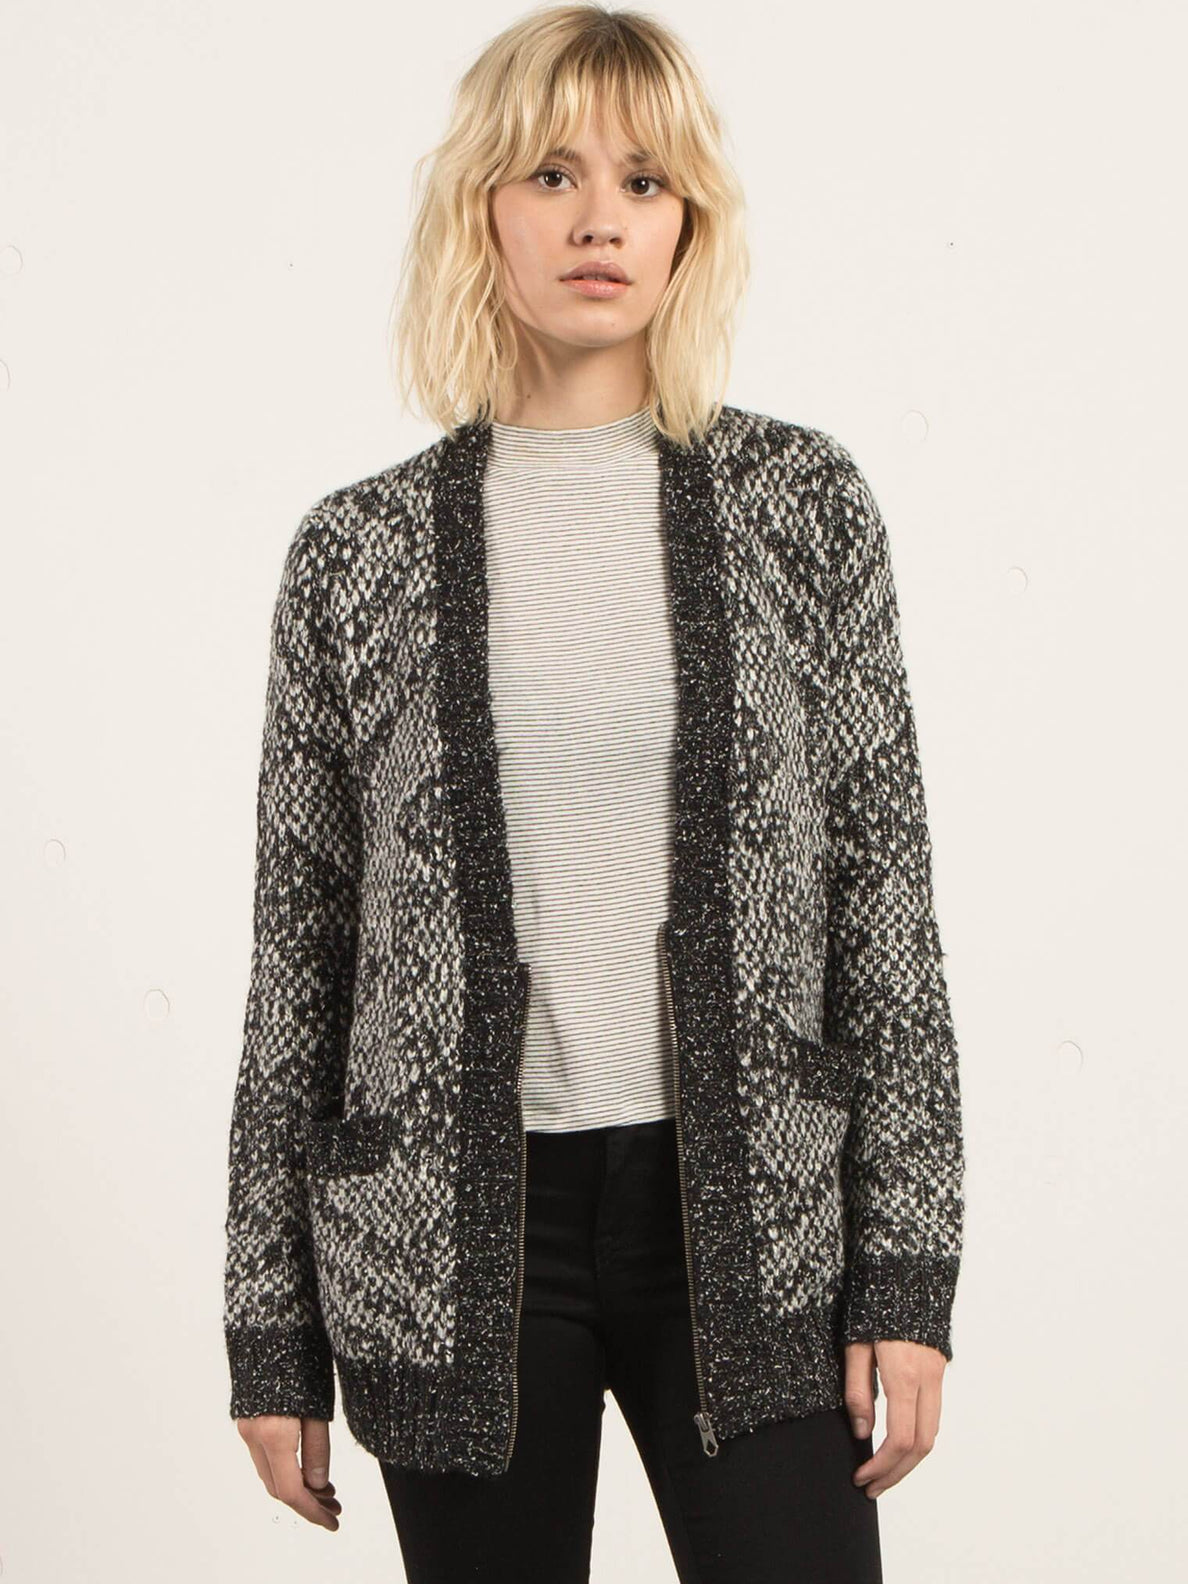 Grampaw Cardigan - Black